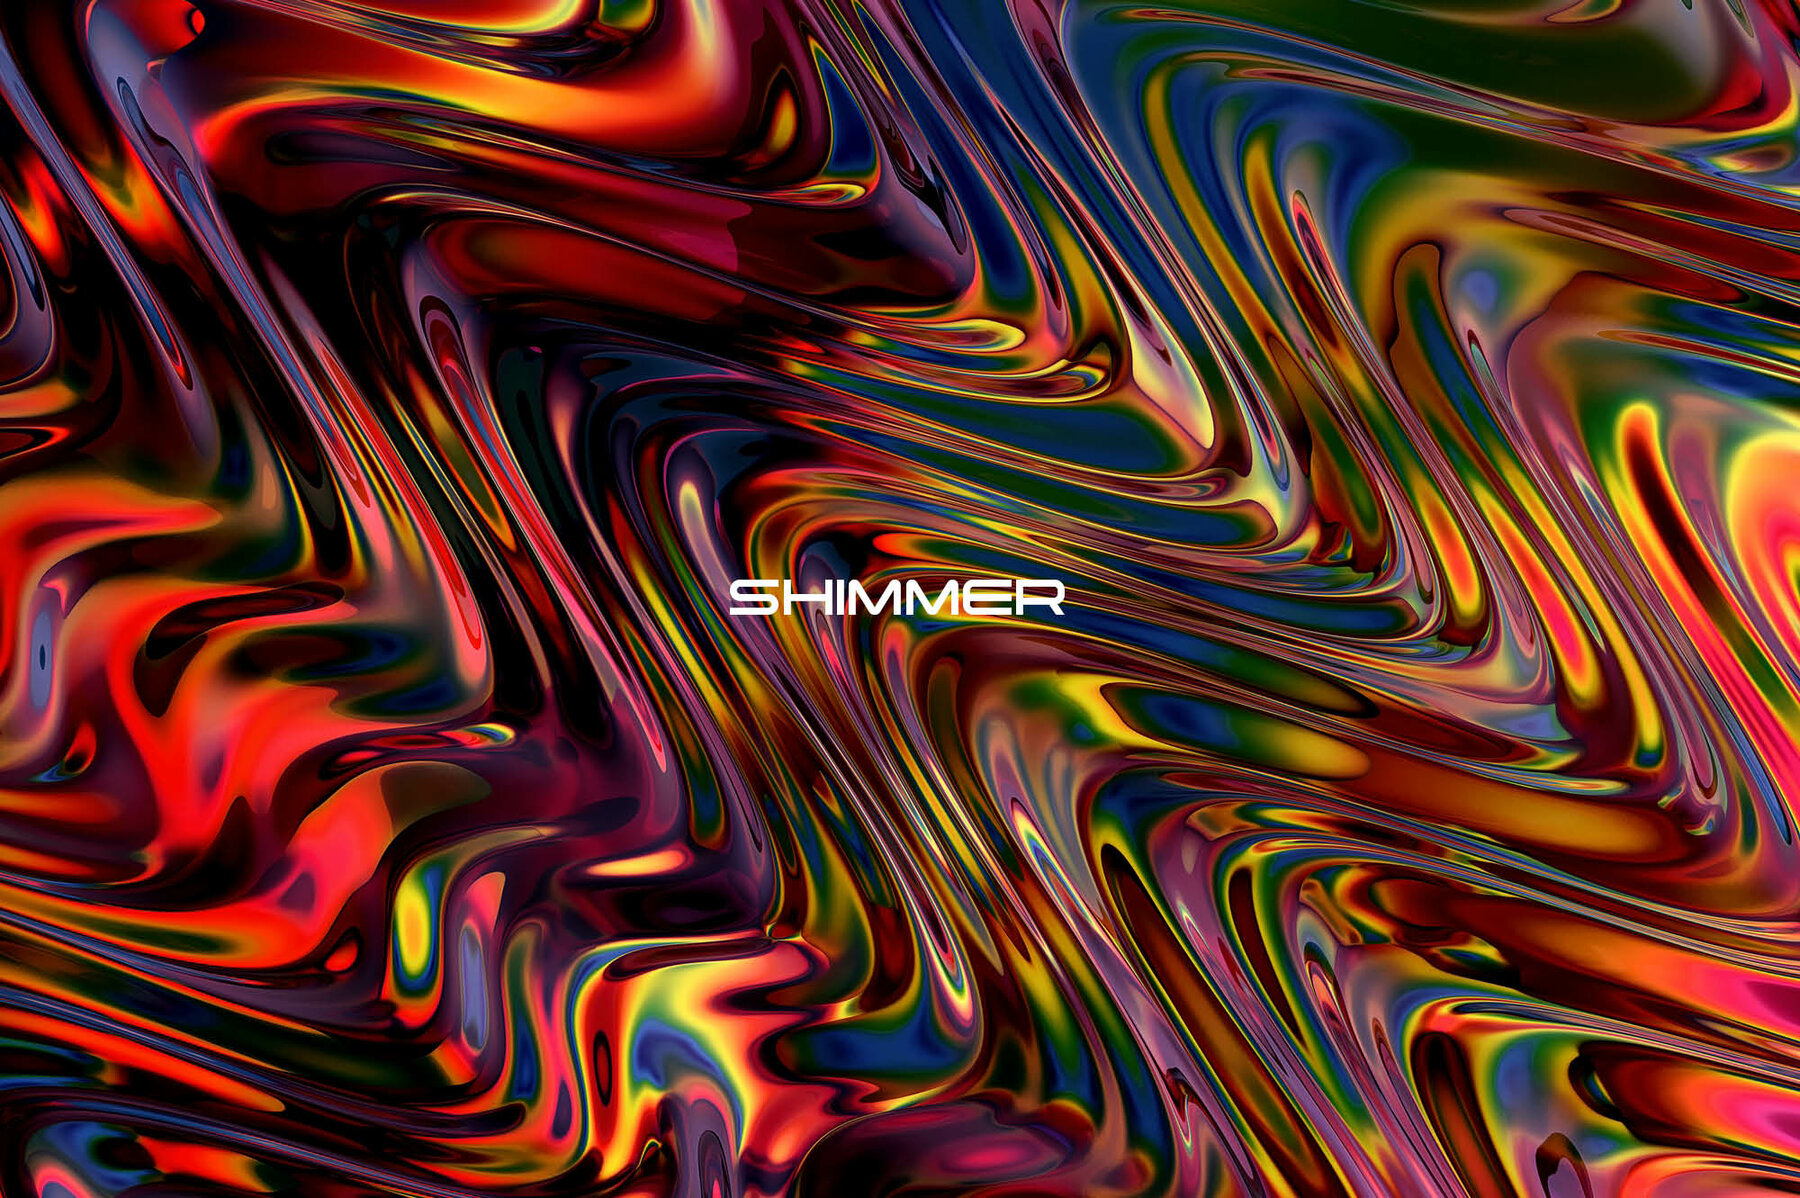 Shimmer     Reflective 3D Textures